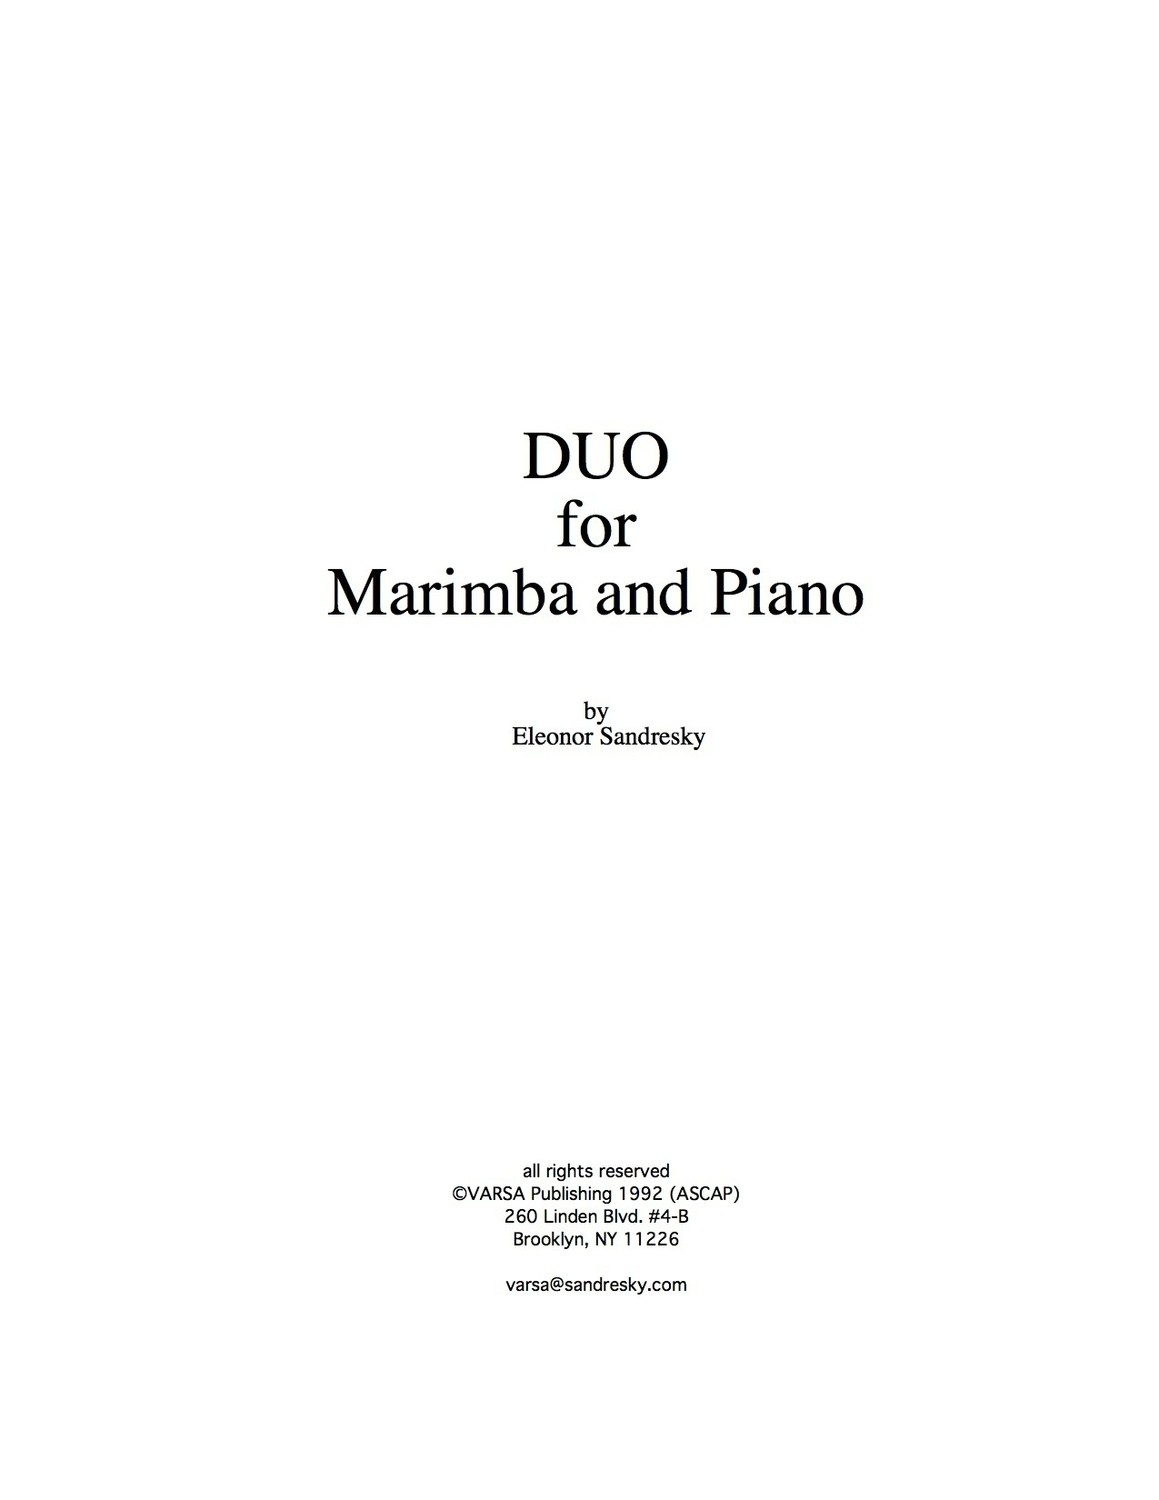 Duo for Marimba and Piano